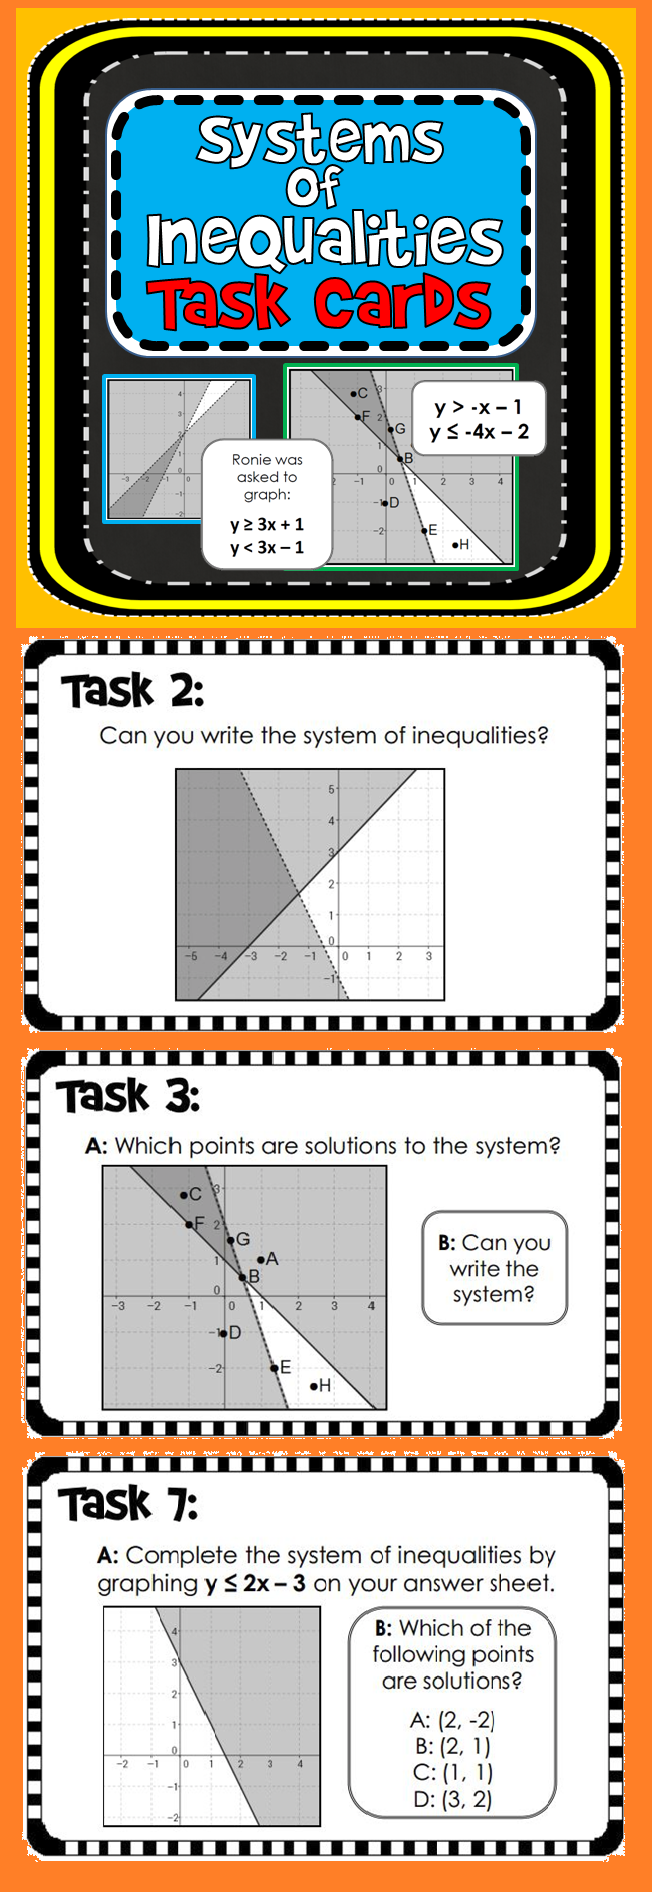 10 Systems Of Inequalities Task Cards With Student Answer Sheet And Answer Key Education Math Algebra Lessons School Algebra